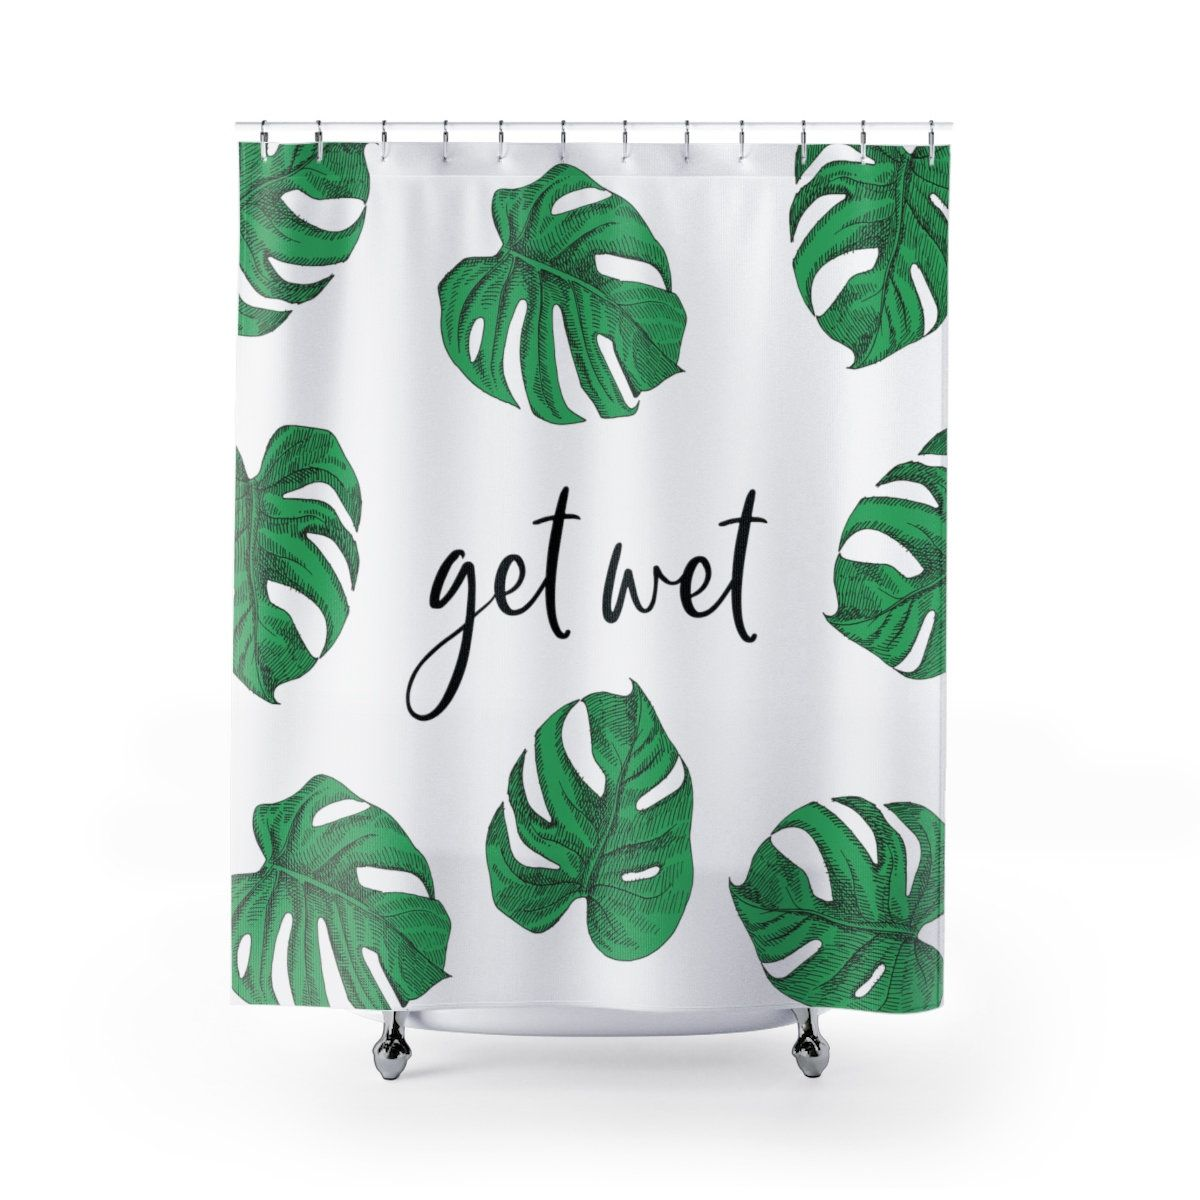 Get Wet Shower Curtain Get Wet Funny Shower Curtain Tropical